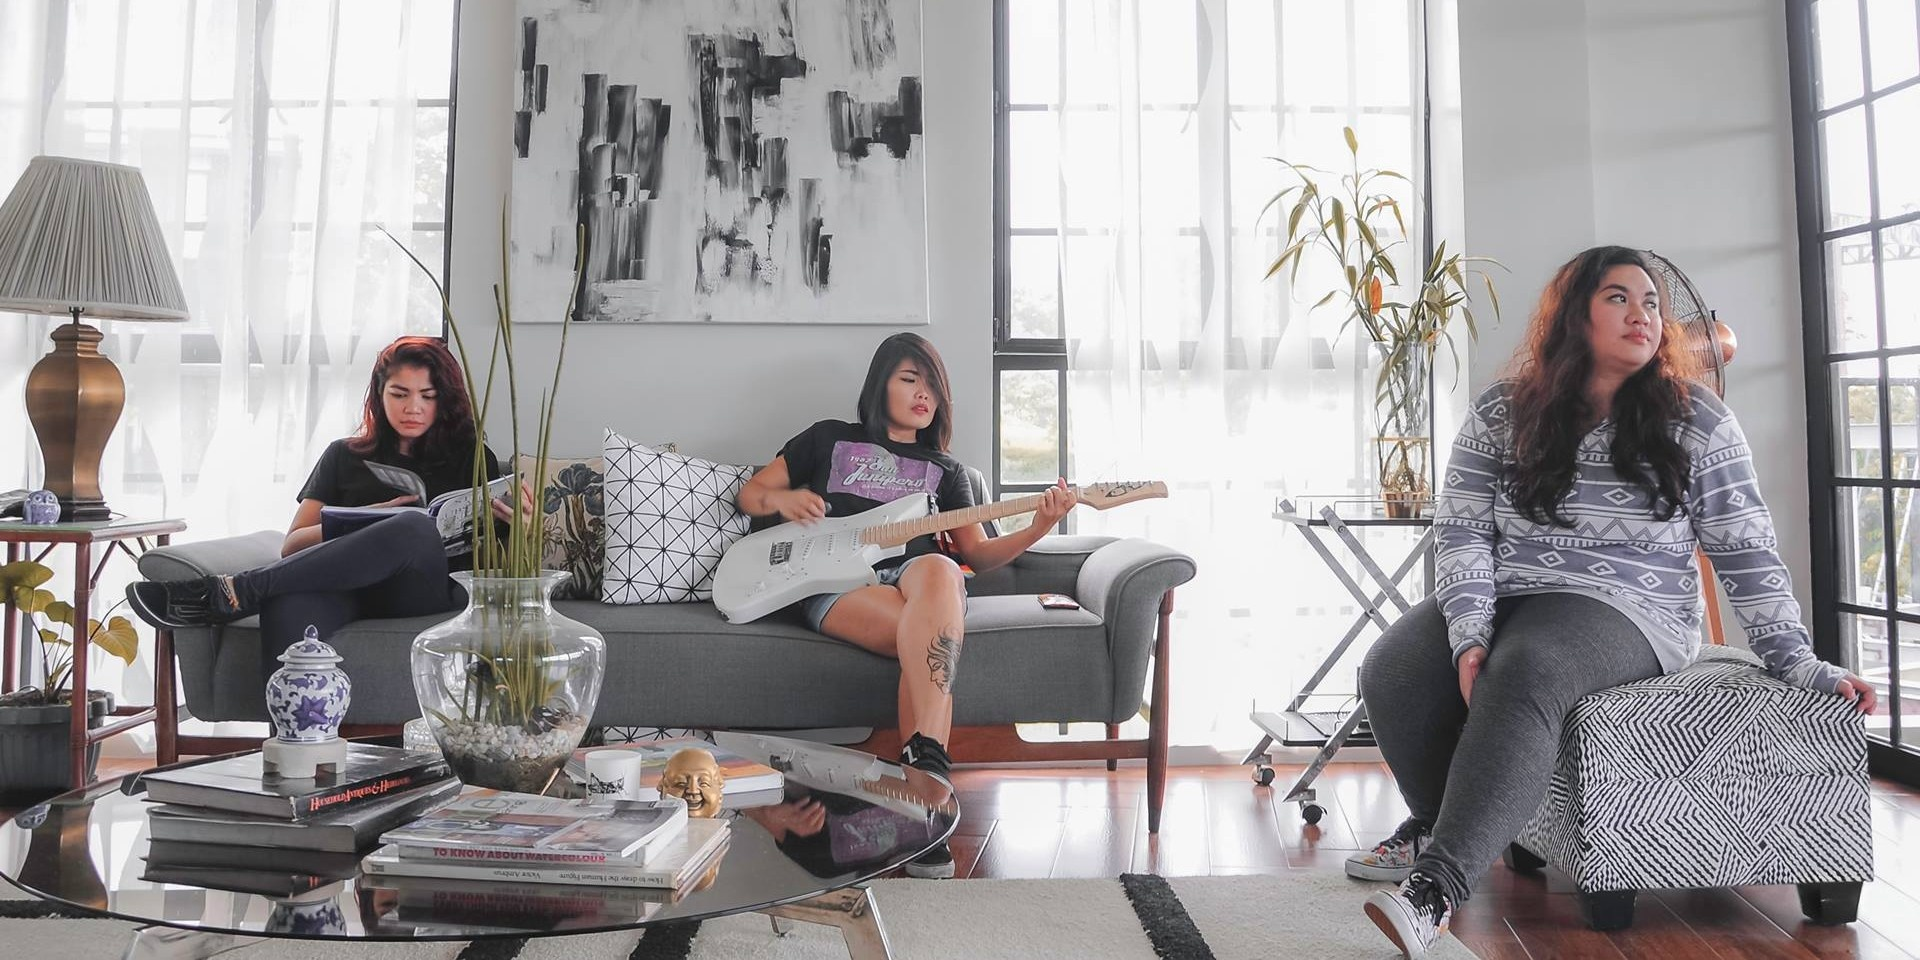 Thirds to open Tiny Moving Parts concert in Manila